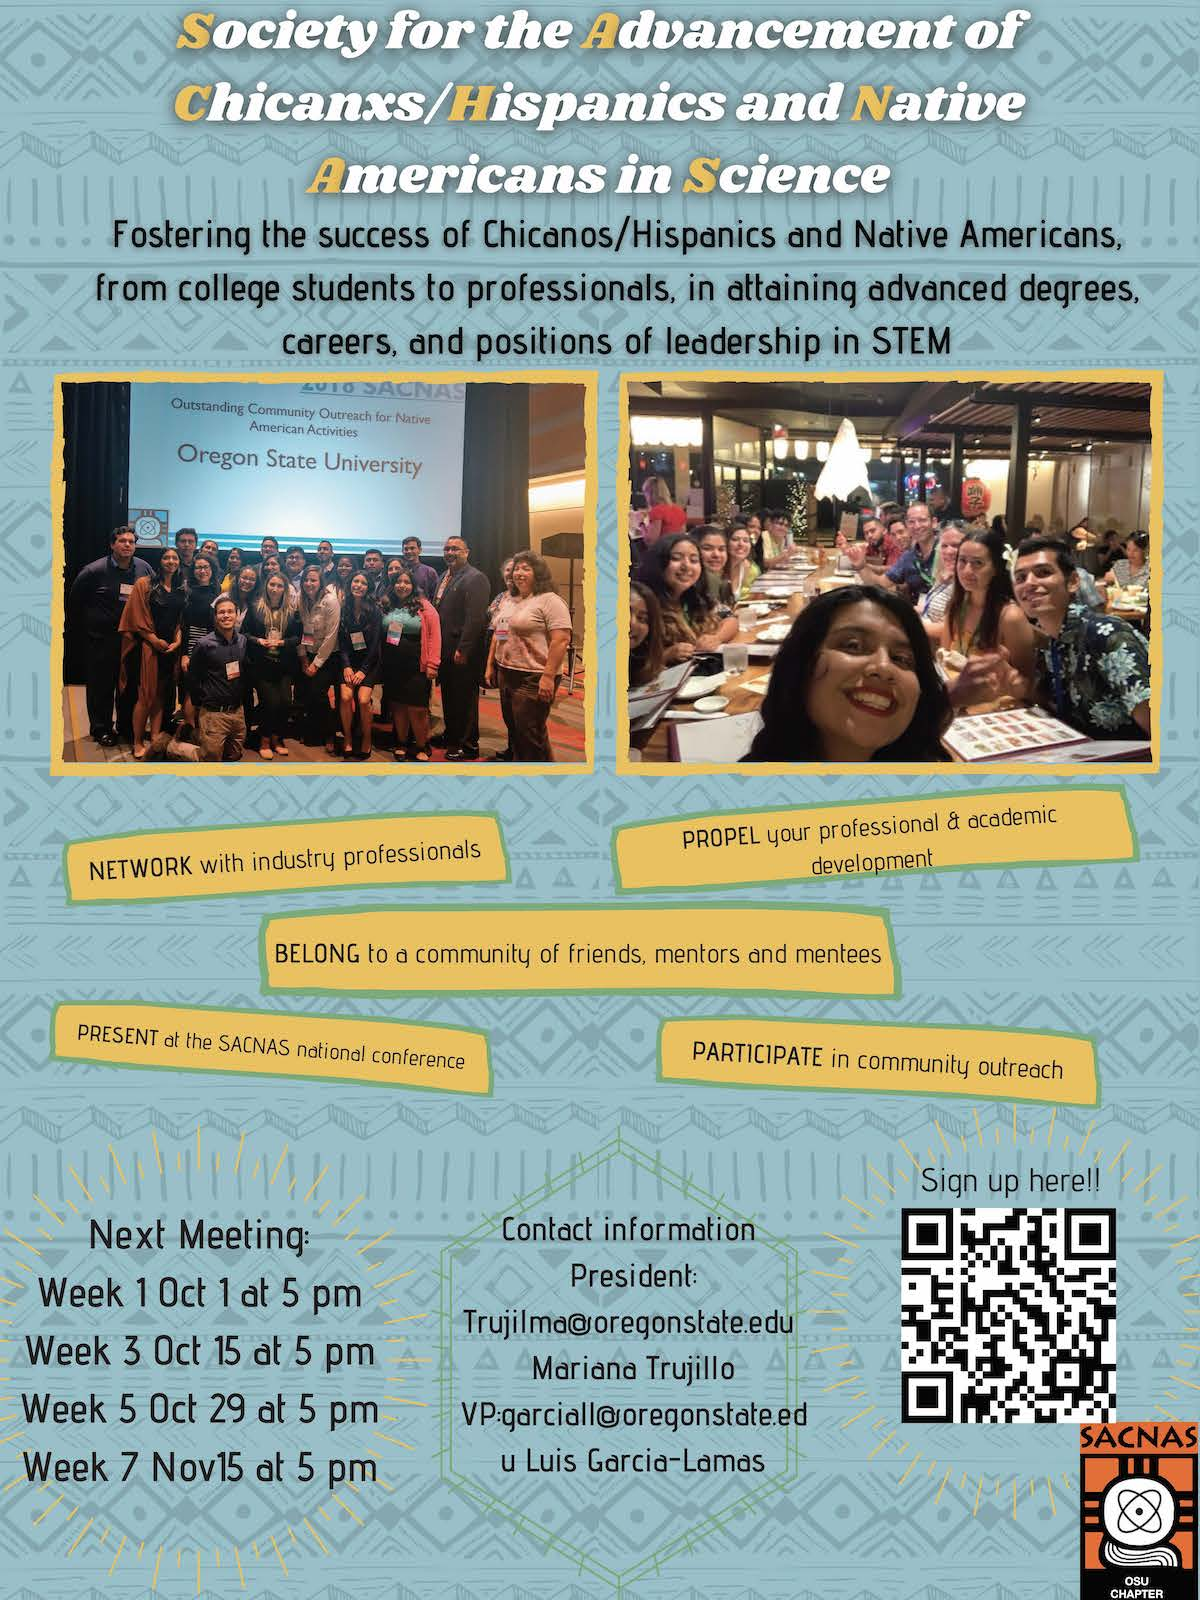 SACNAS - Society for the Advancement of Chicanos/Hispanics and Native Americans in Science